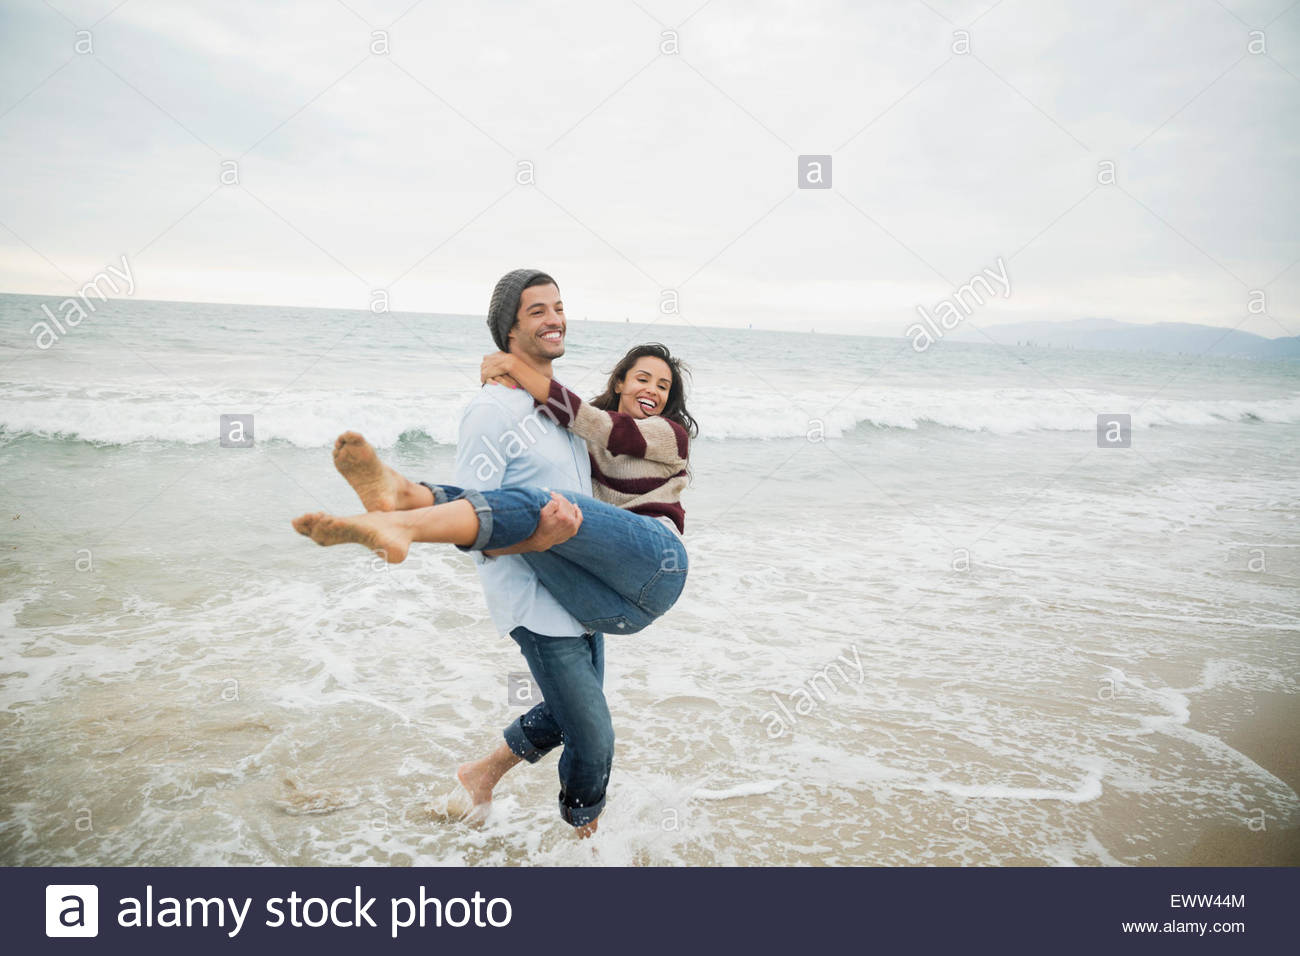 Playful boyfriend carrying girlfriend in ocean surf - Stock Image